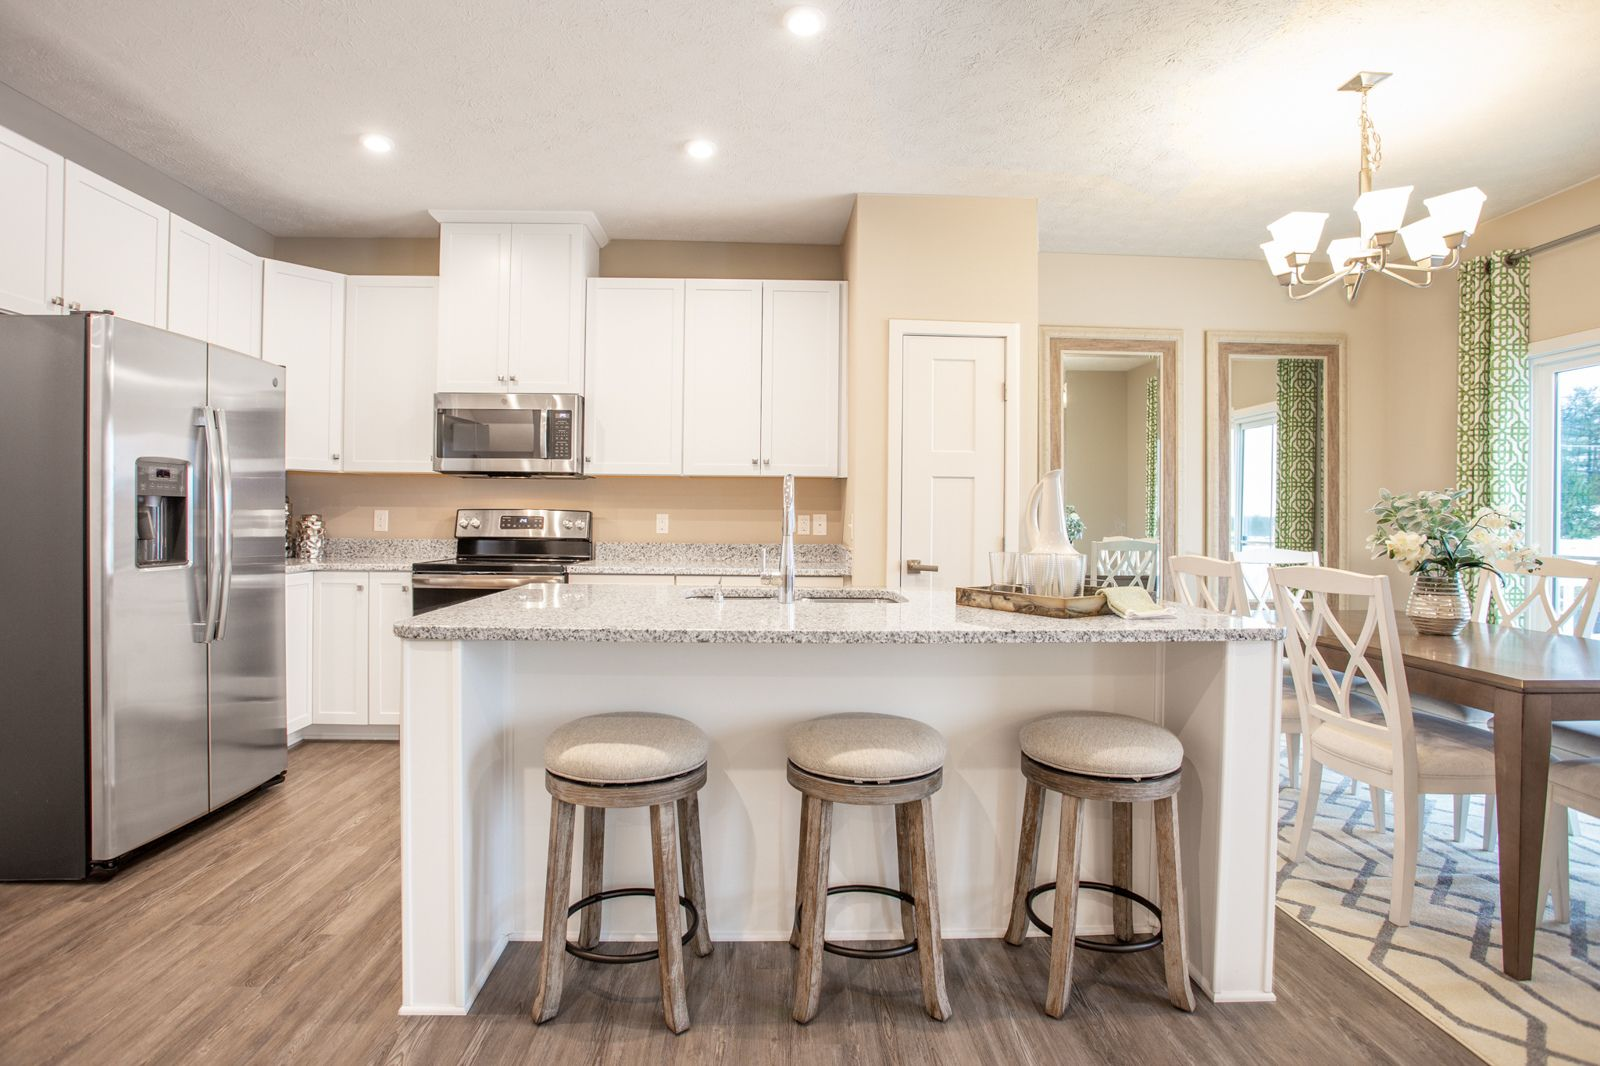 Kitchen featured in the Rosecliff By HeartlandHomes in Morgantown, WV